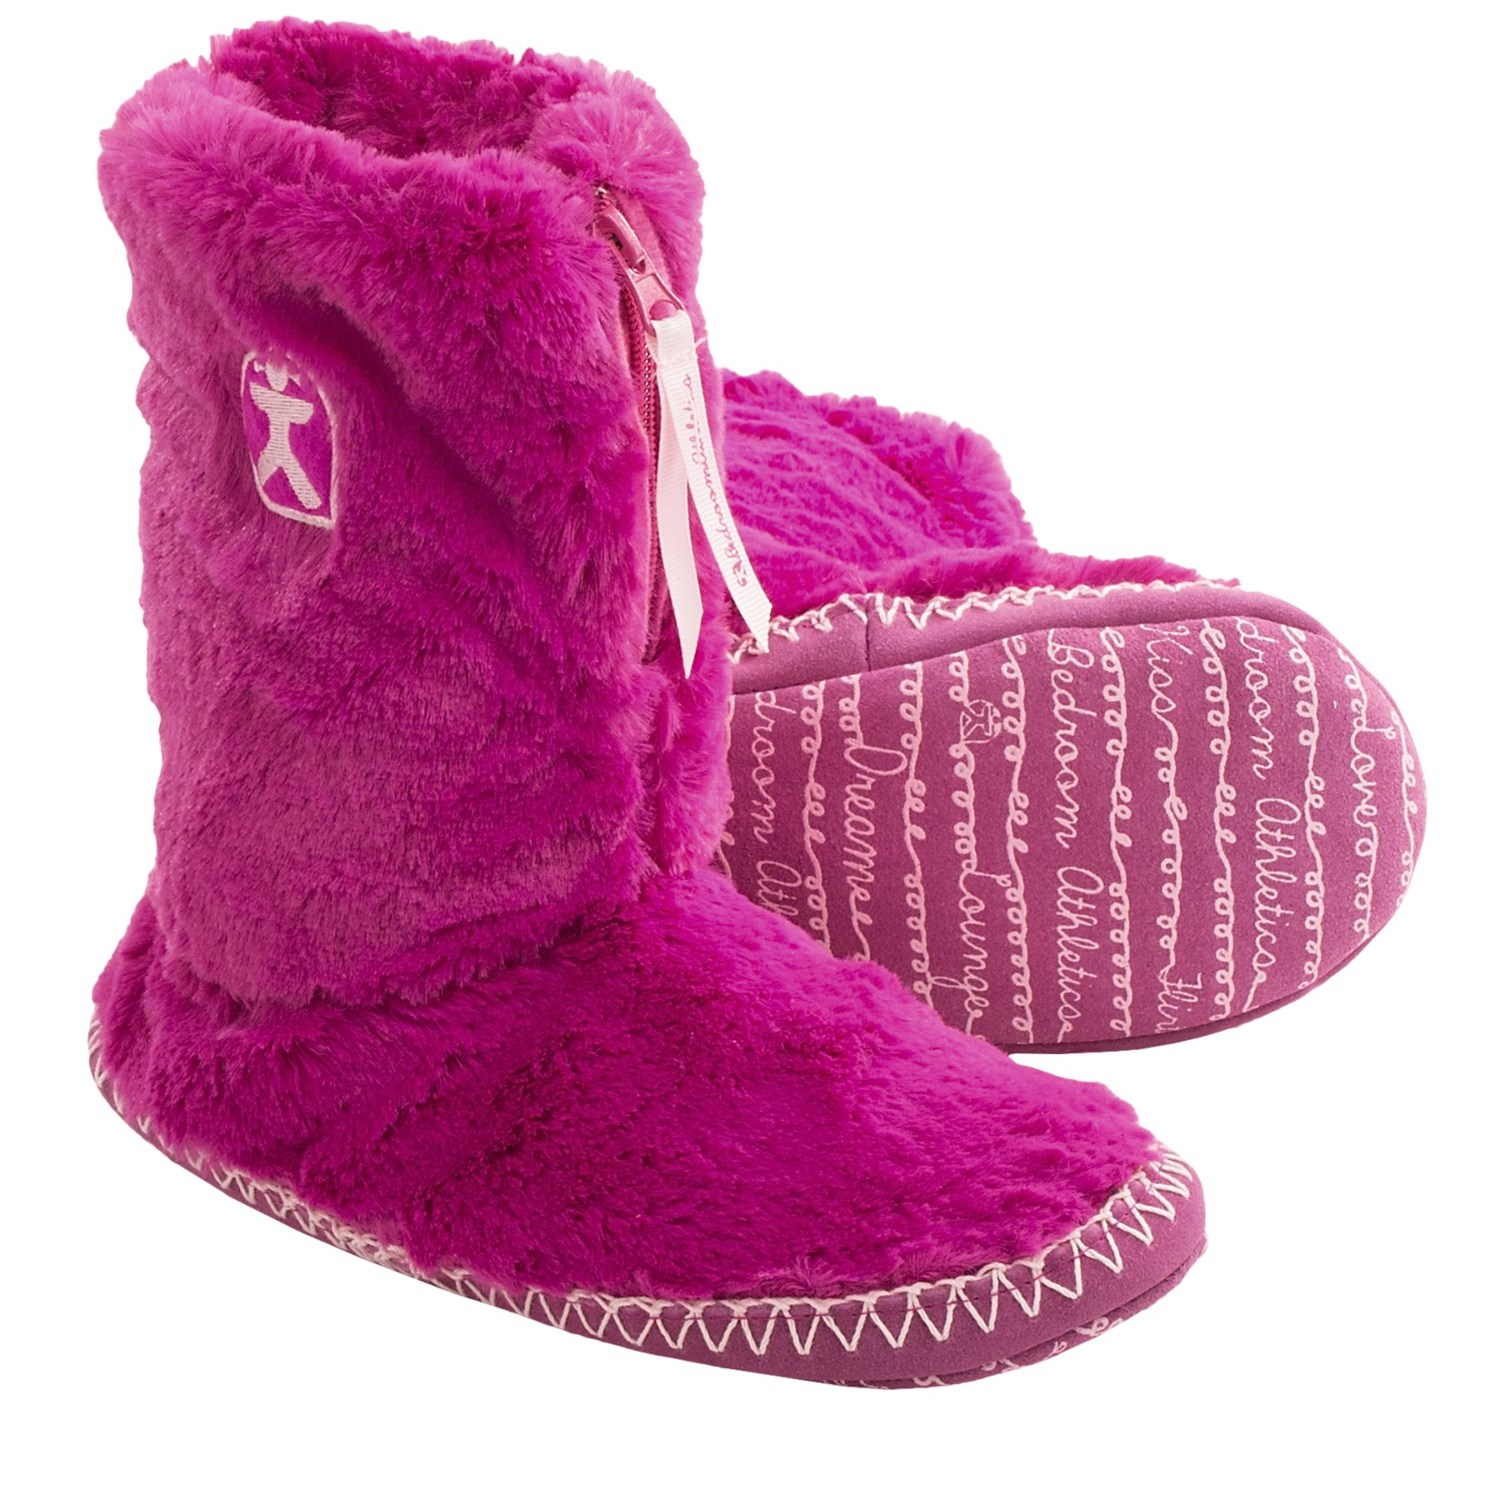 bedroom athletics marilyn boot slippers for women in hot pink